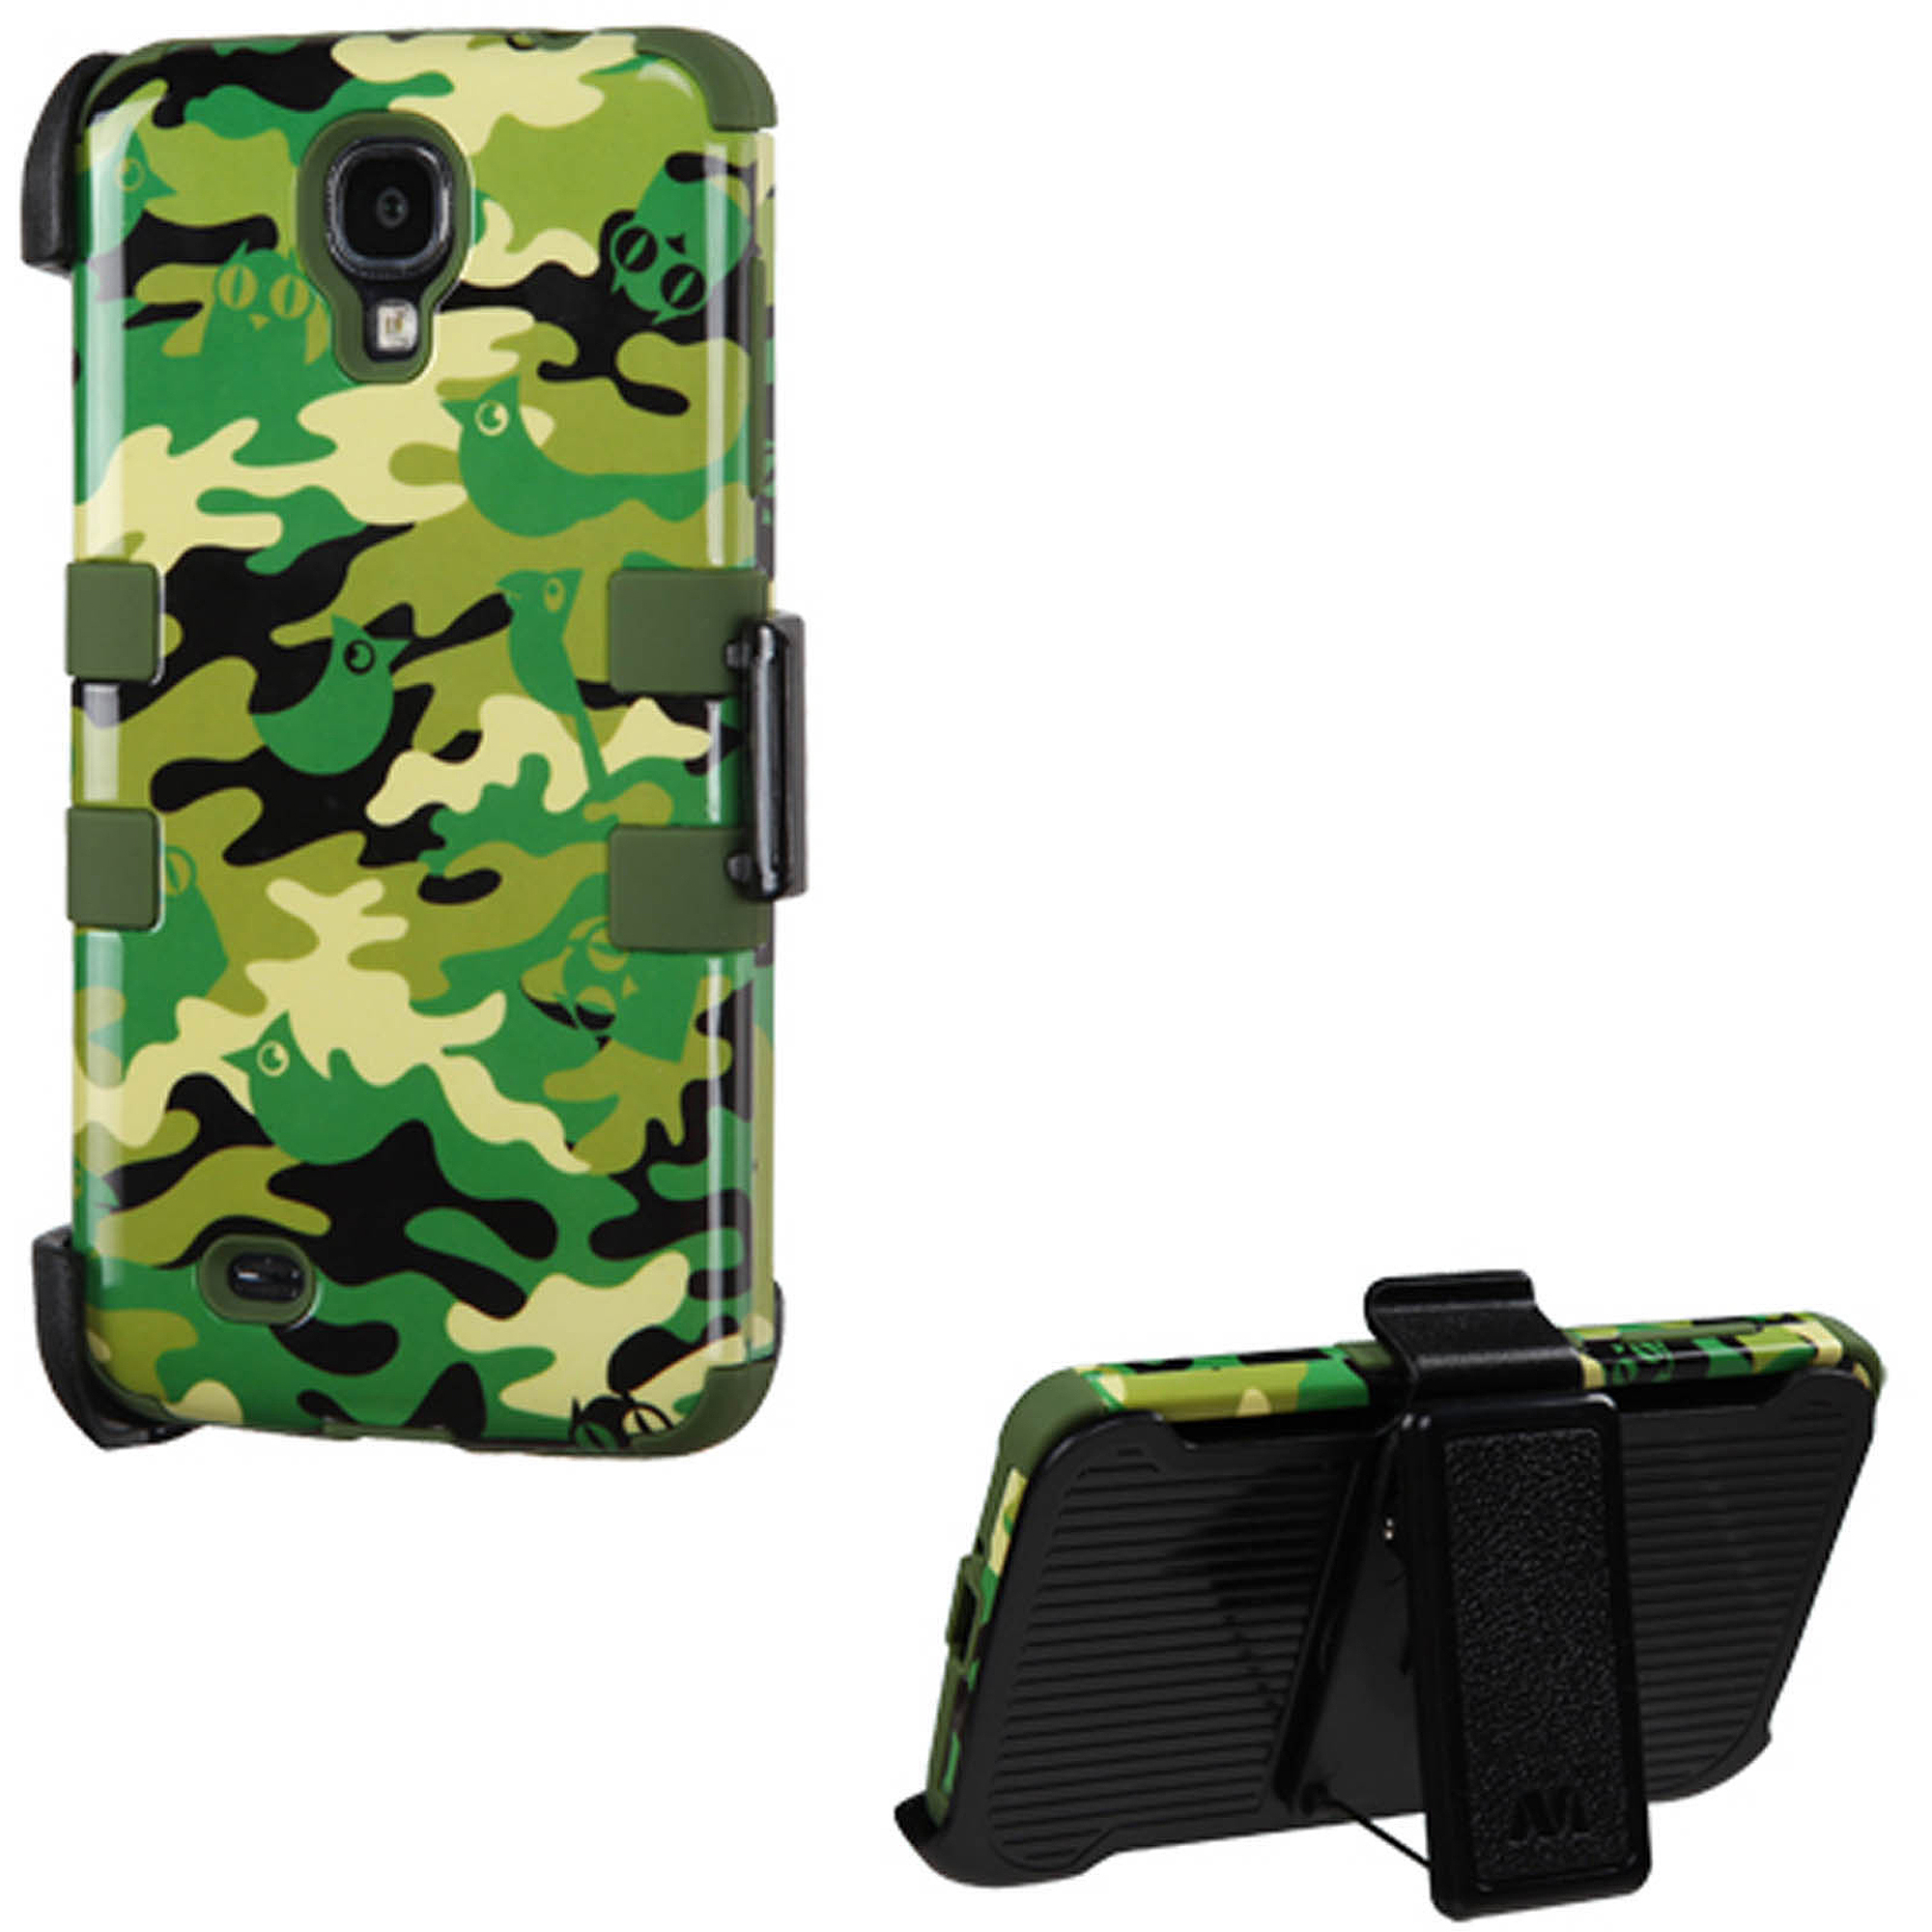 KTA Galaxy S4 Plastic Case with Holster